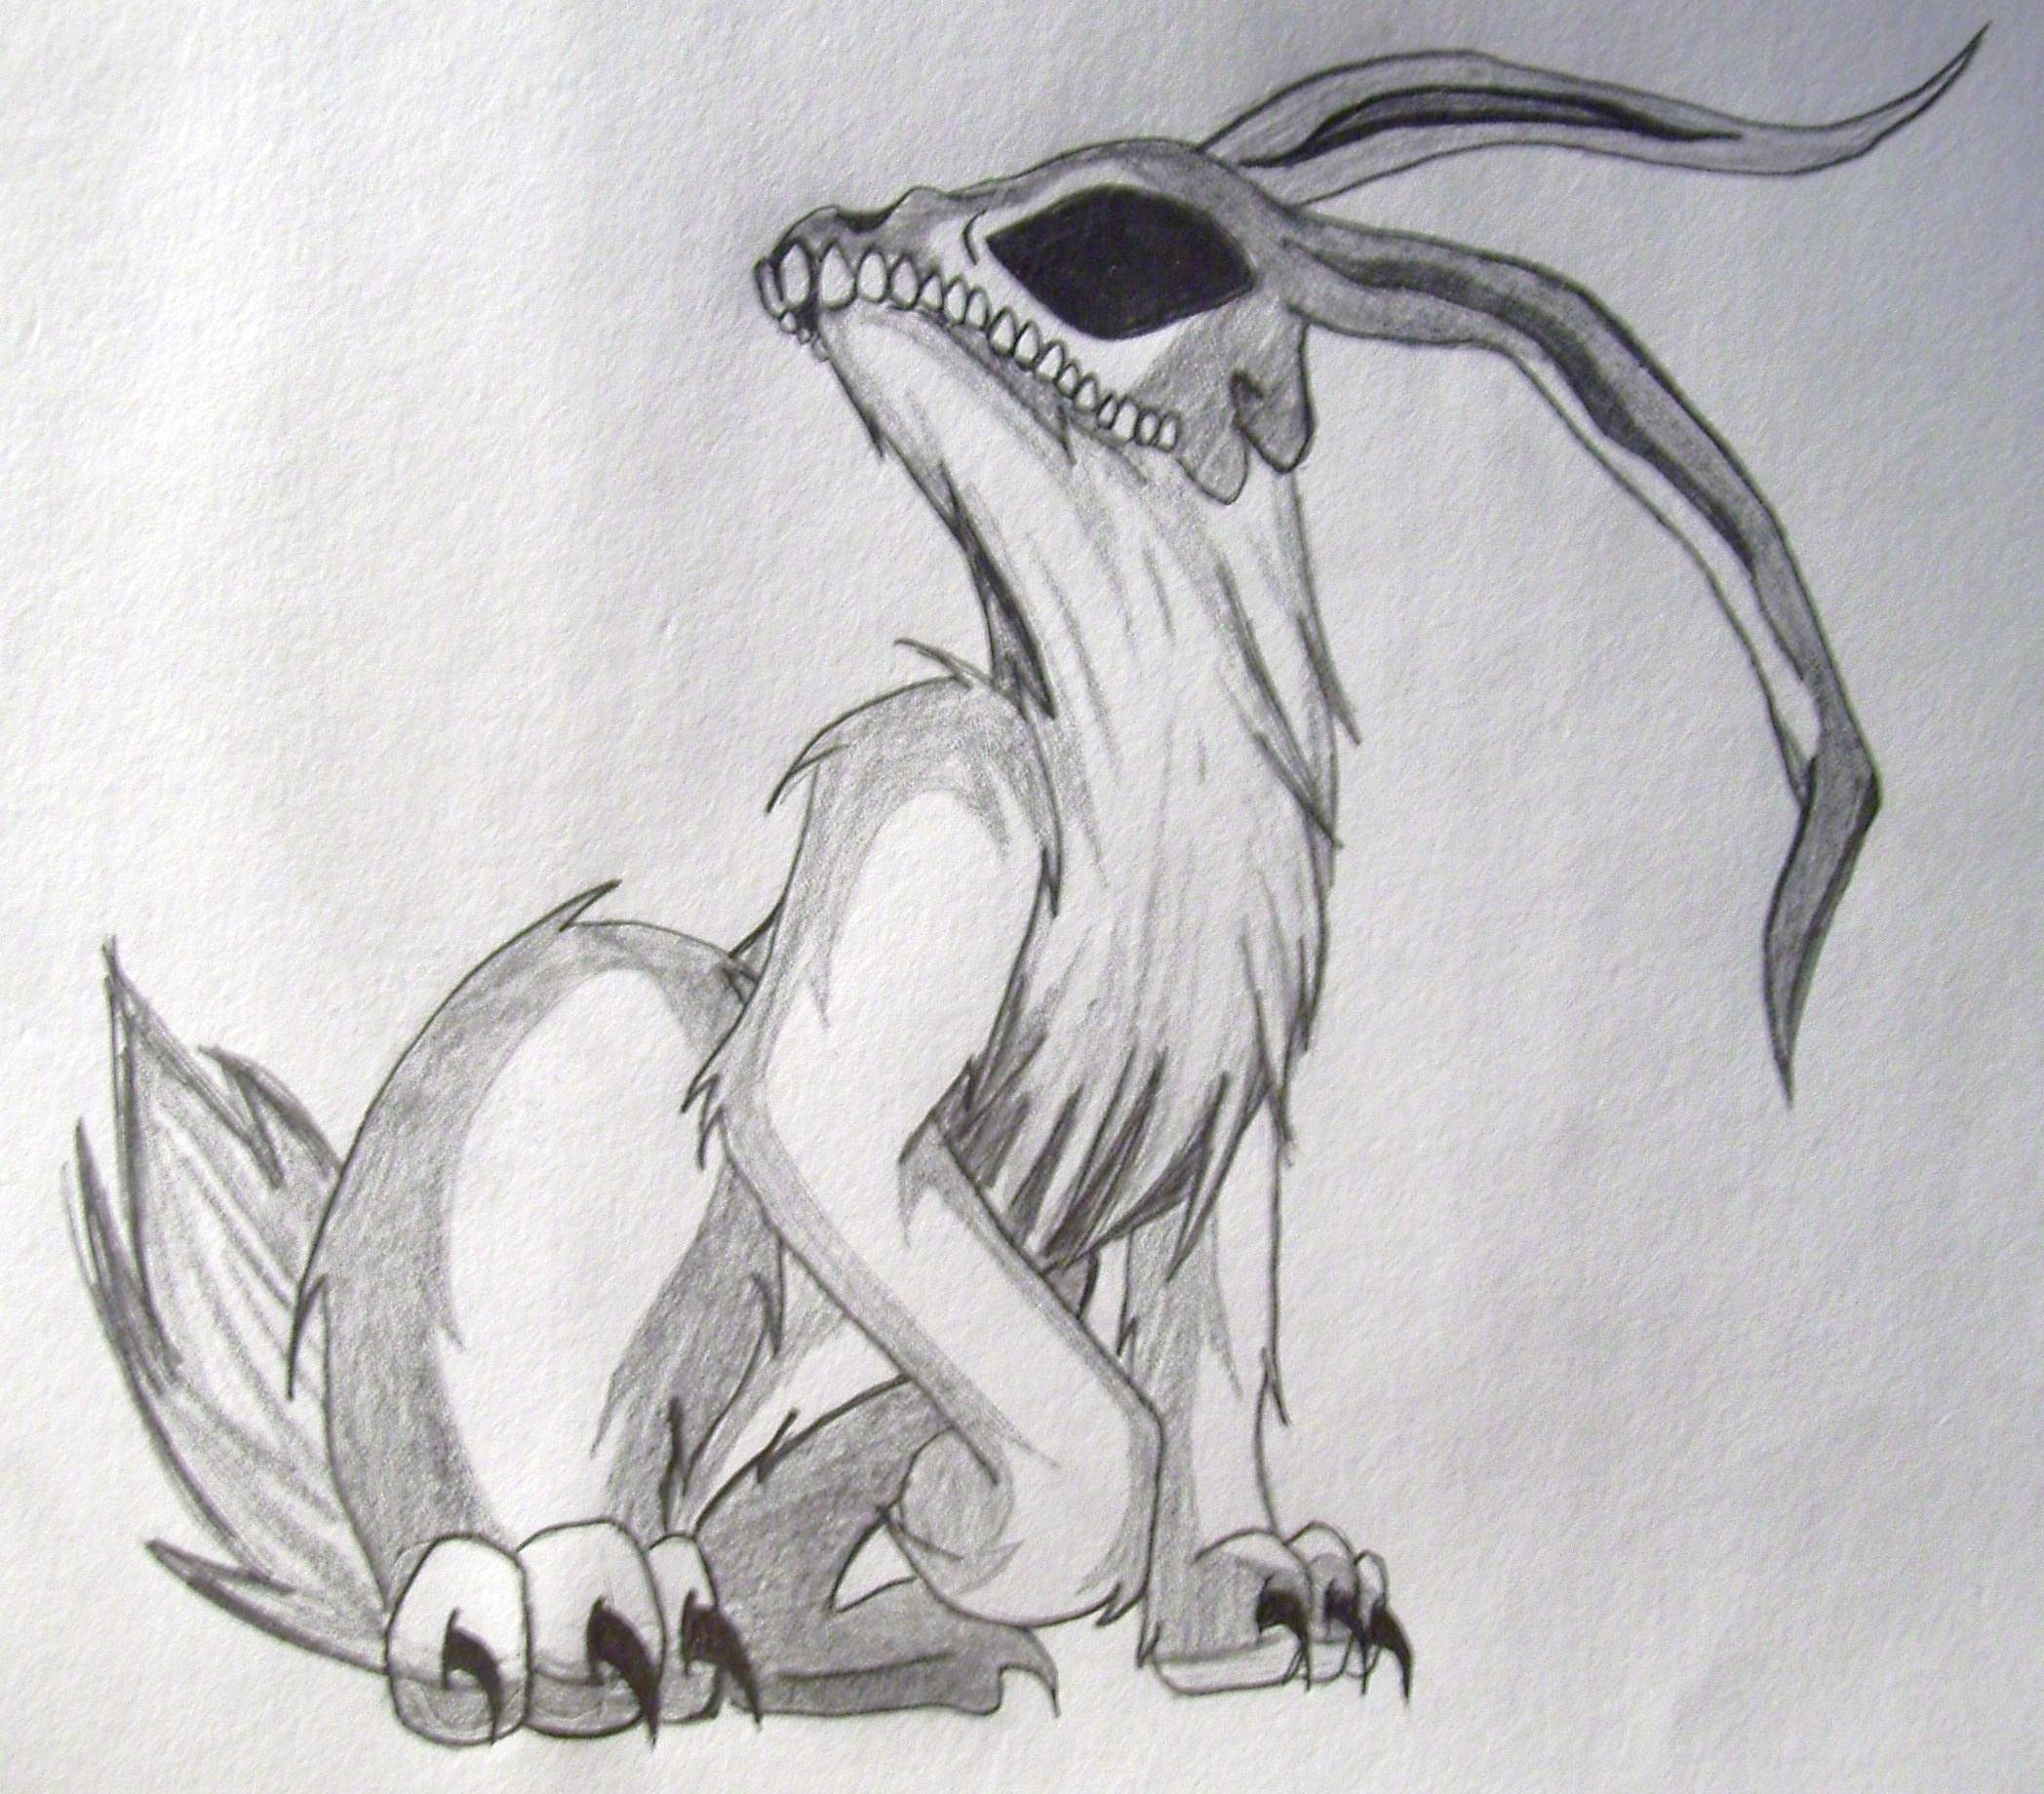 tGad1VU Frank the Bunny by Filthy Dragon 666